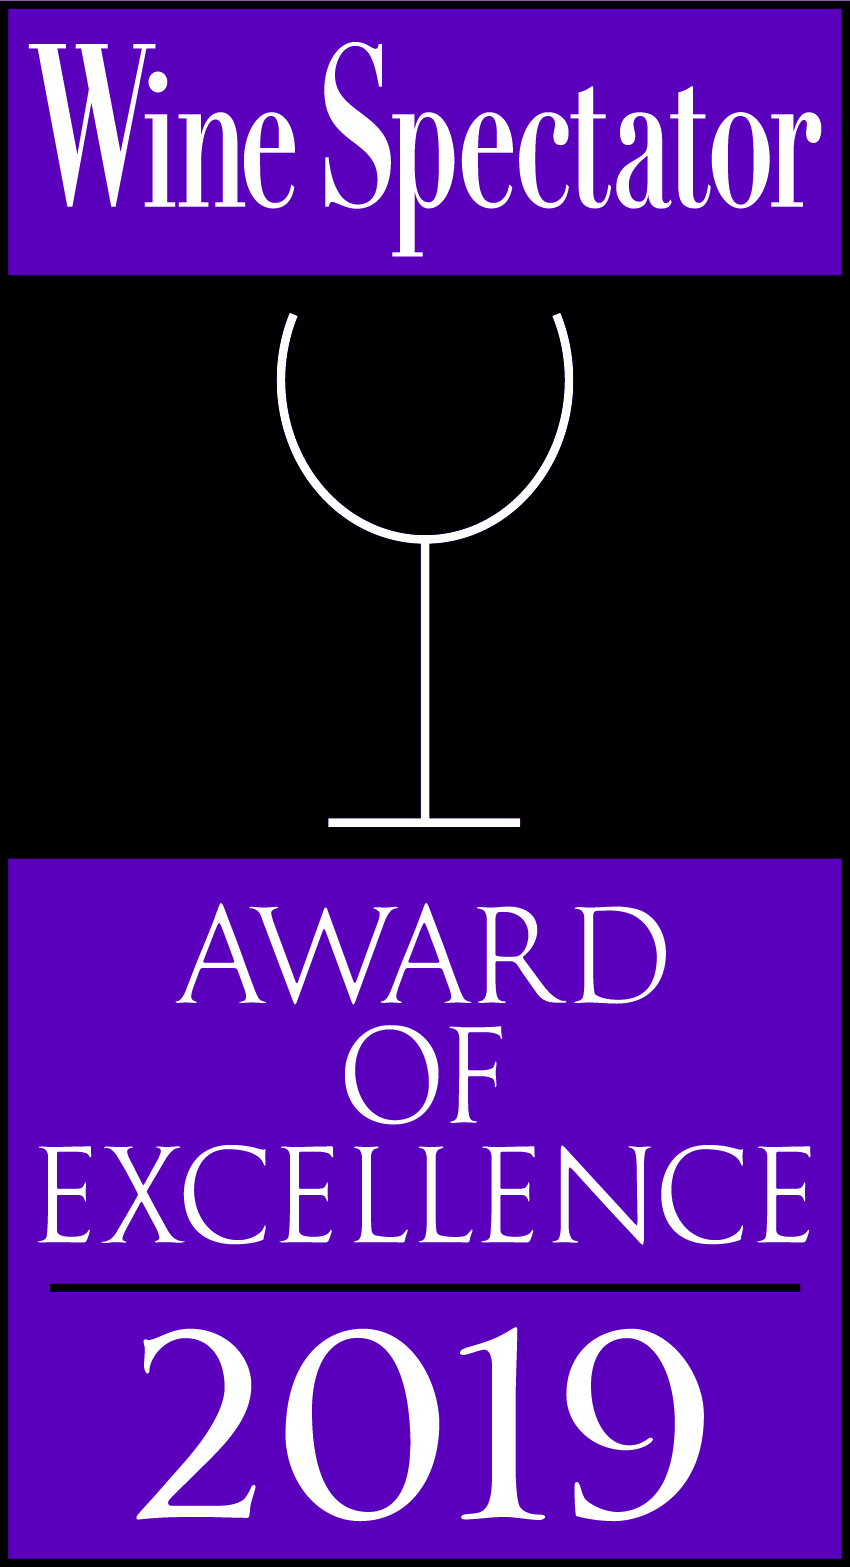 Wine Spectator's Award of Excellence 2019